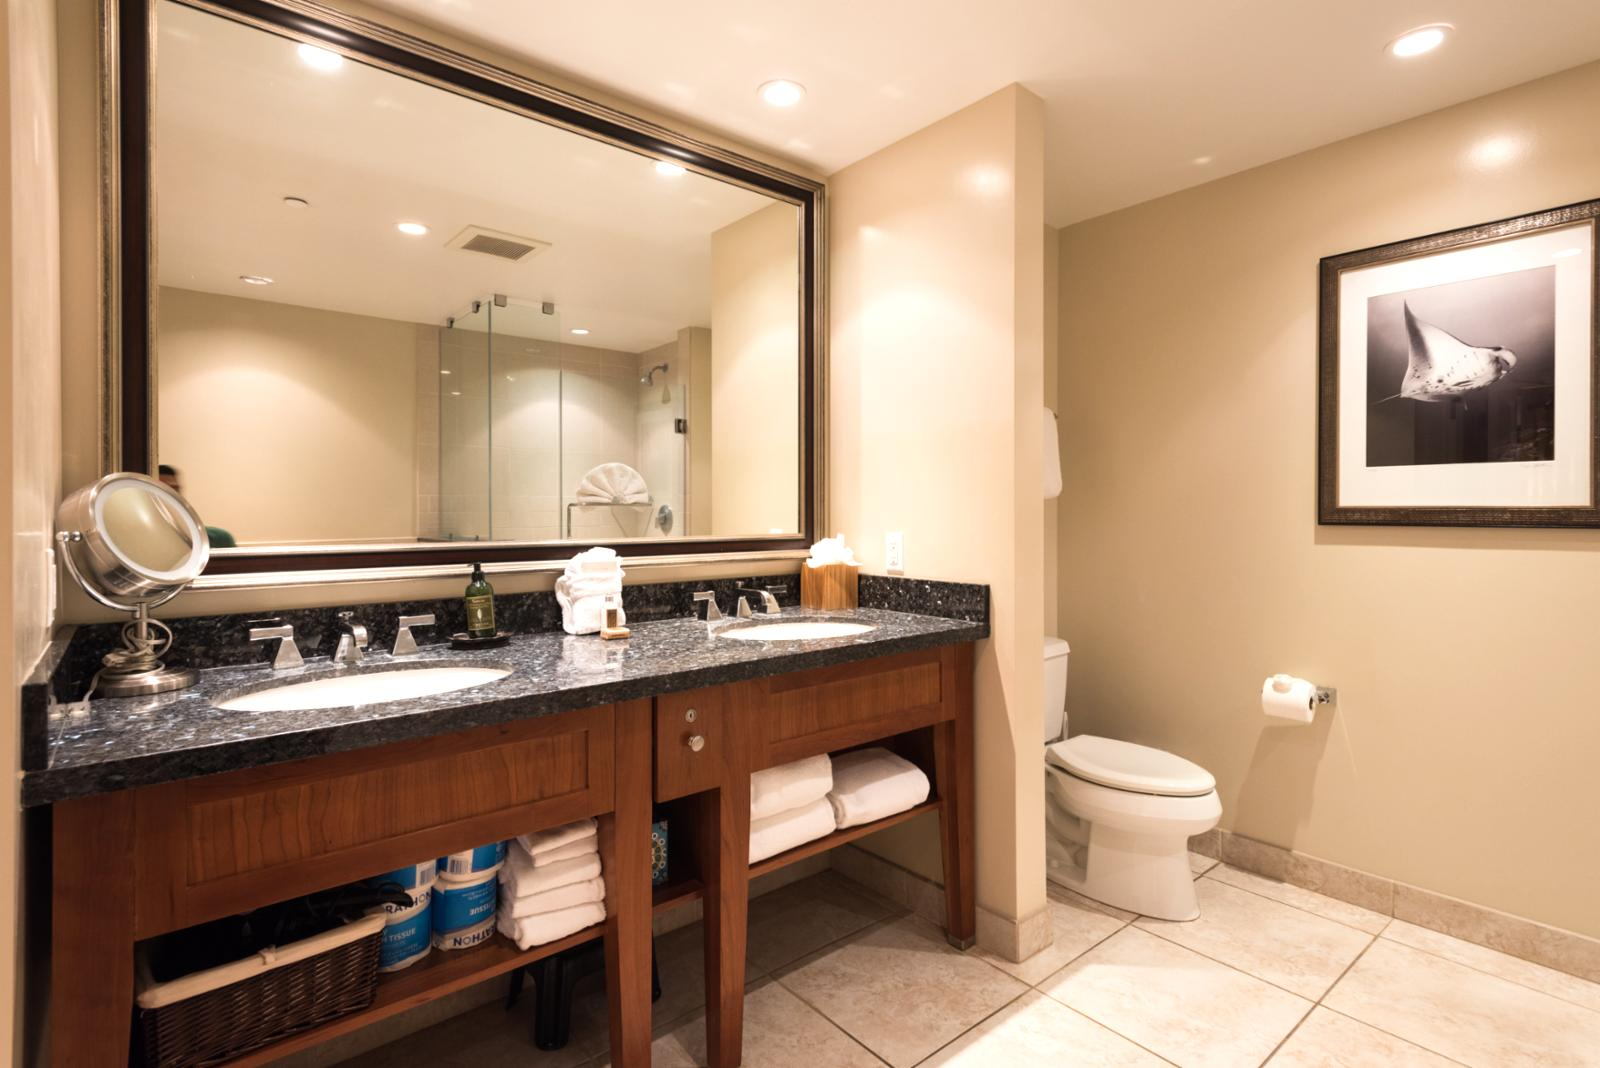 Dual sinks, spacious layout